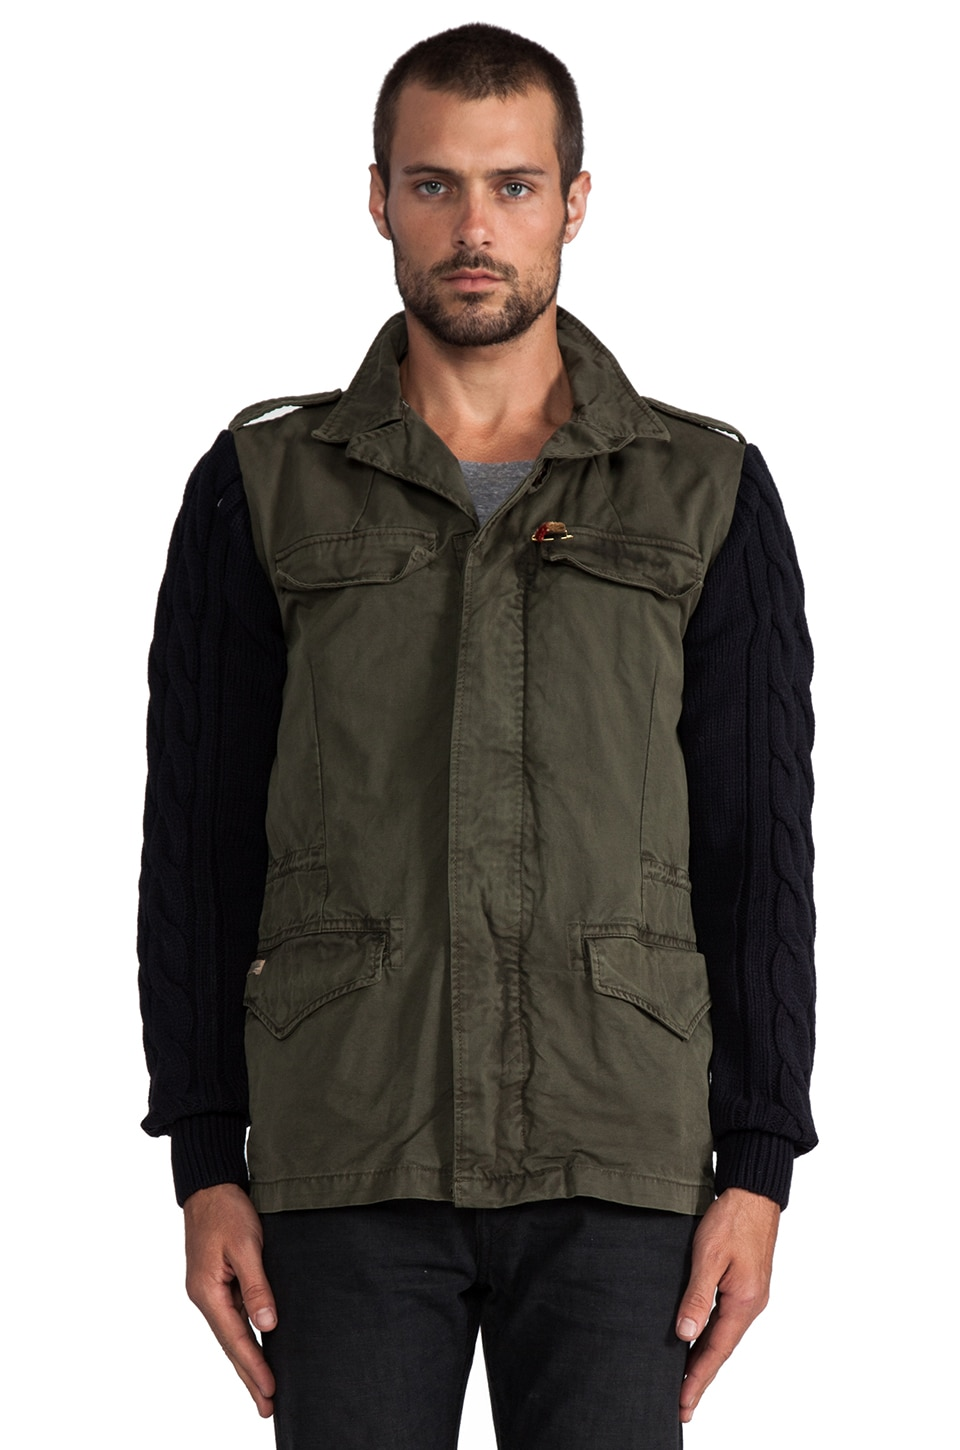 Scotch & Soda Military Jacket w/ Knit Sleeves in Olive